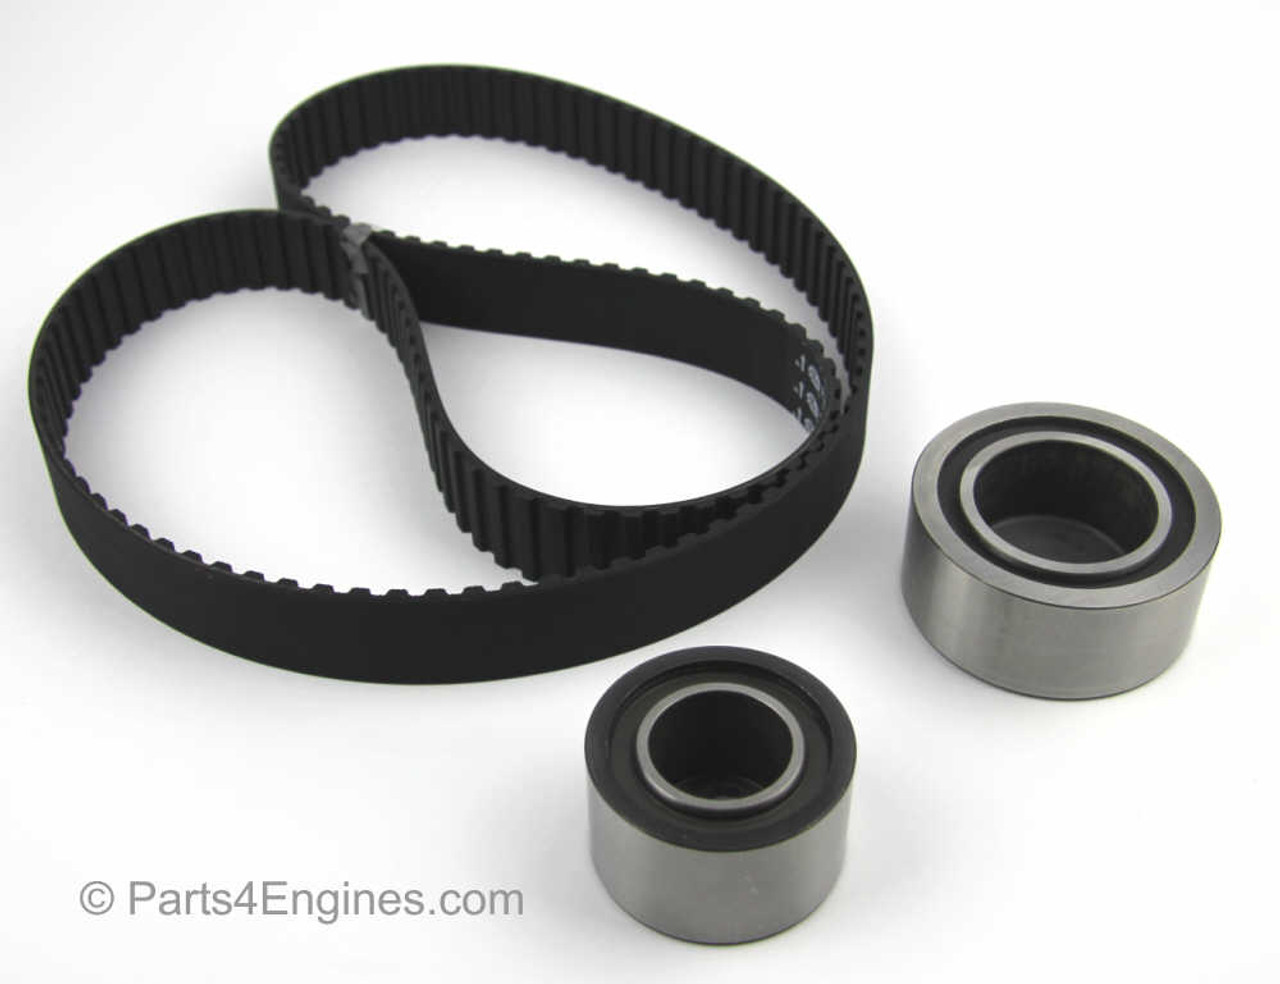 Volvo Penta MD22 Timing belt kit from parts4engines.com